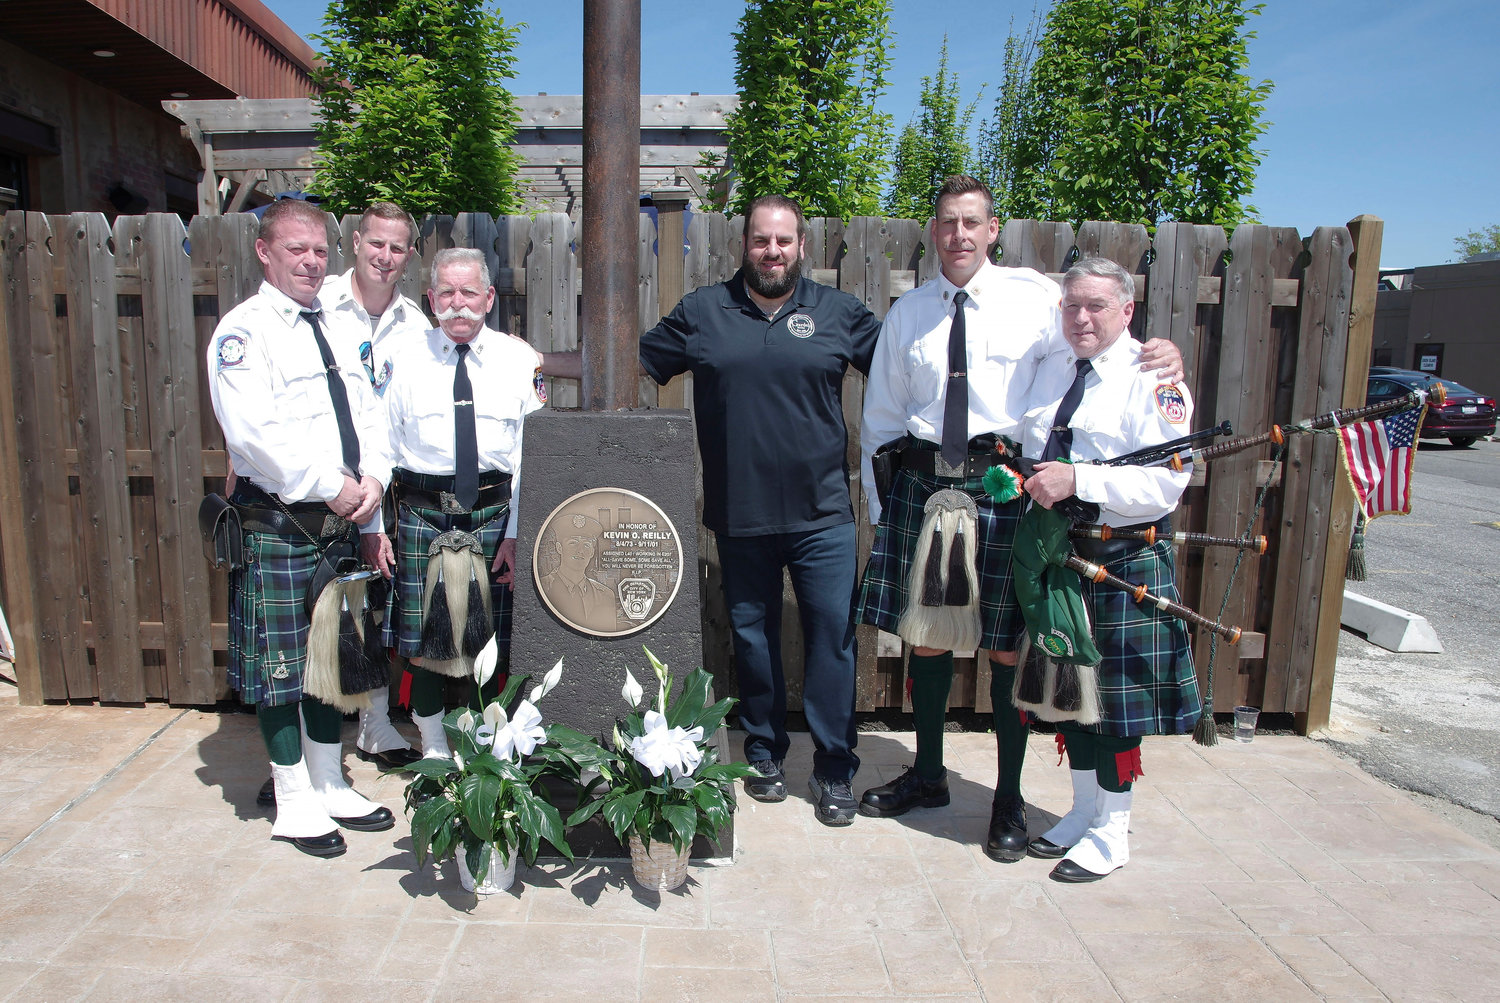 Members of the East Meadow Fire Department, FDNY and the FDNY Emerald Society Pipes and Drums were there for the May 11 dedication.